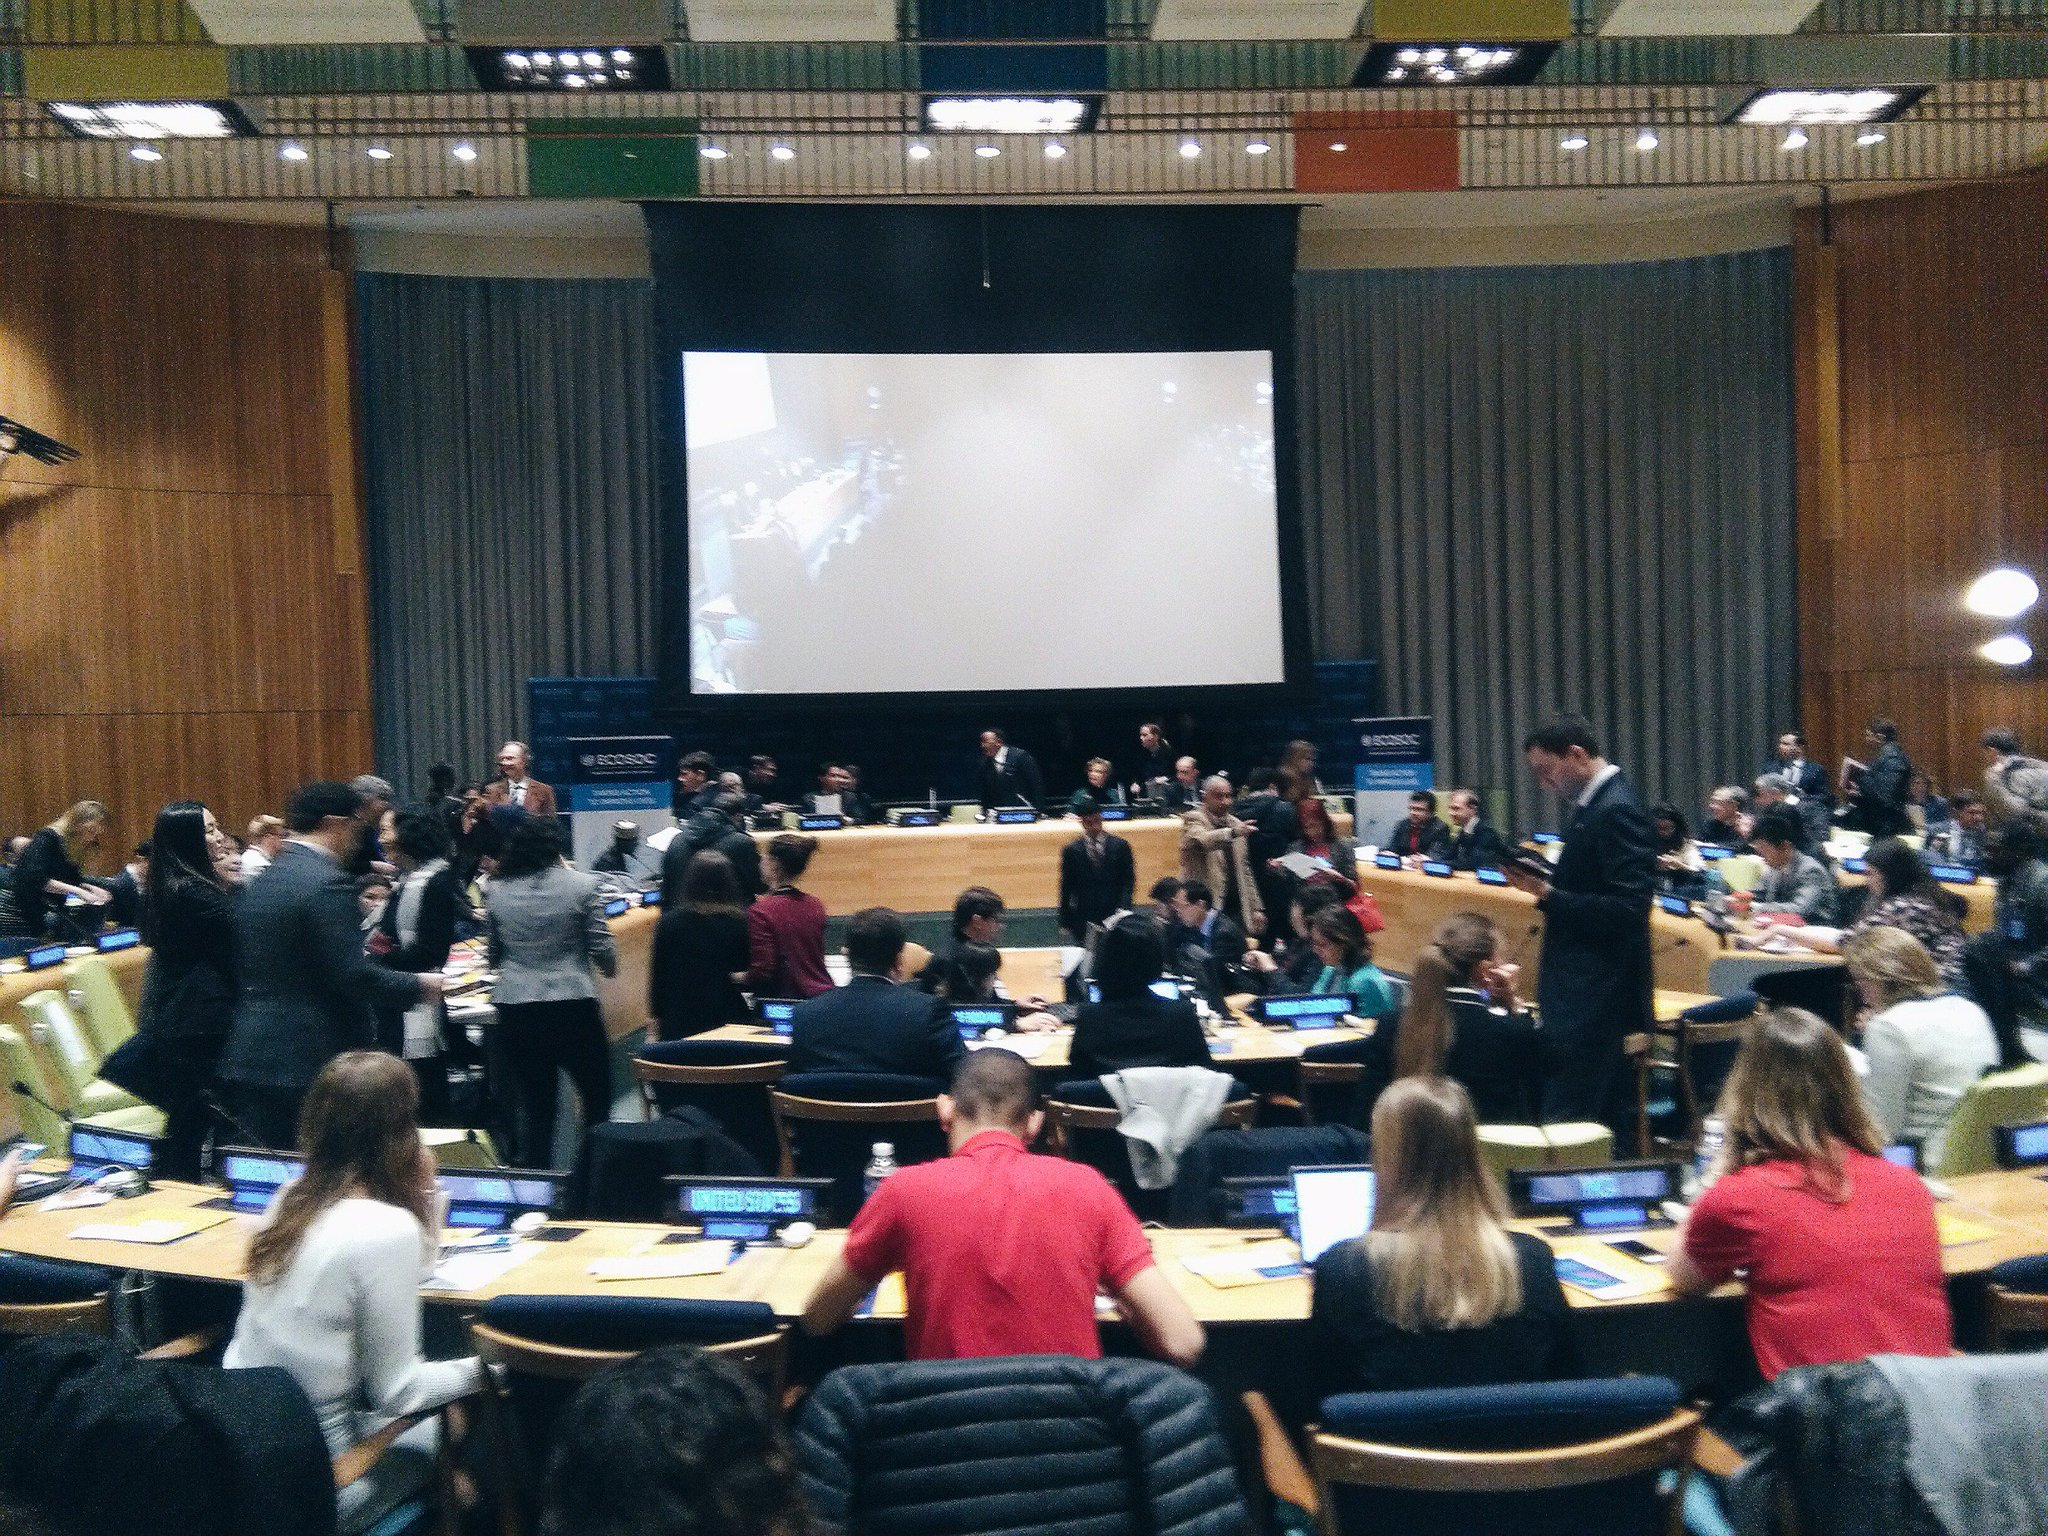 ECOSOC Youth Forum about to start! So many young faces from all over the world - excited about what's to come! #youth2030 https://t.co/sQC1PRipVt